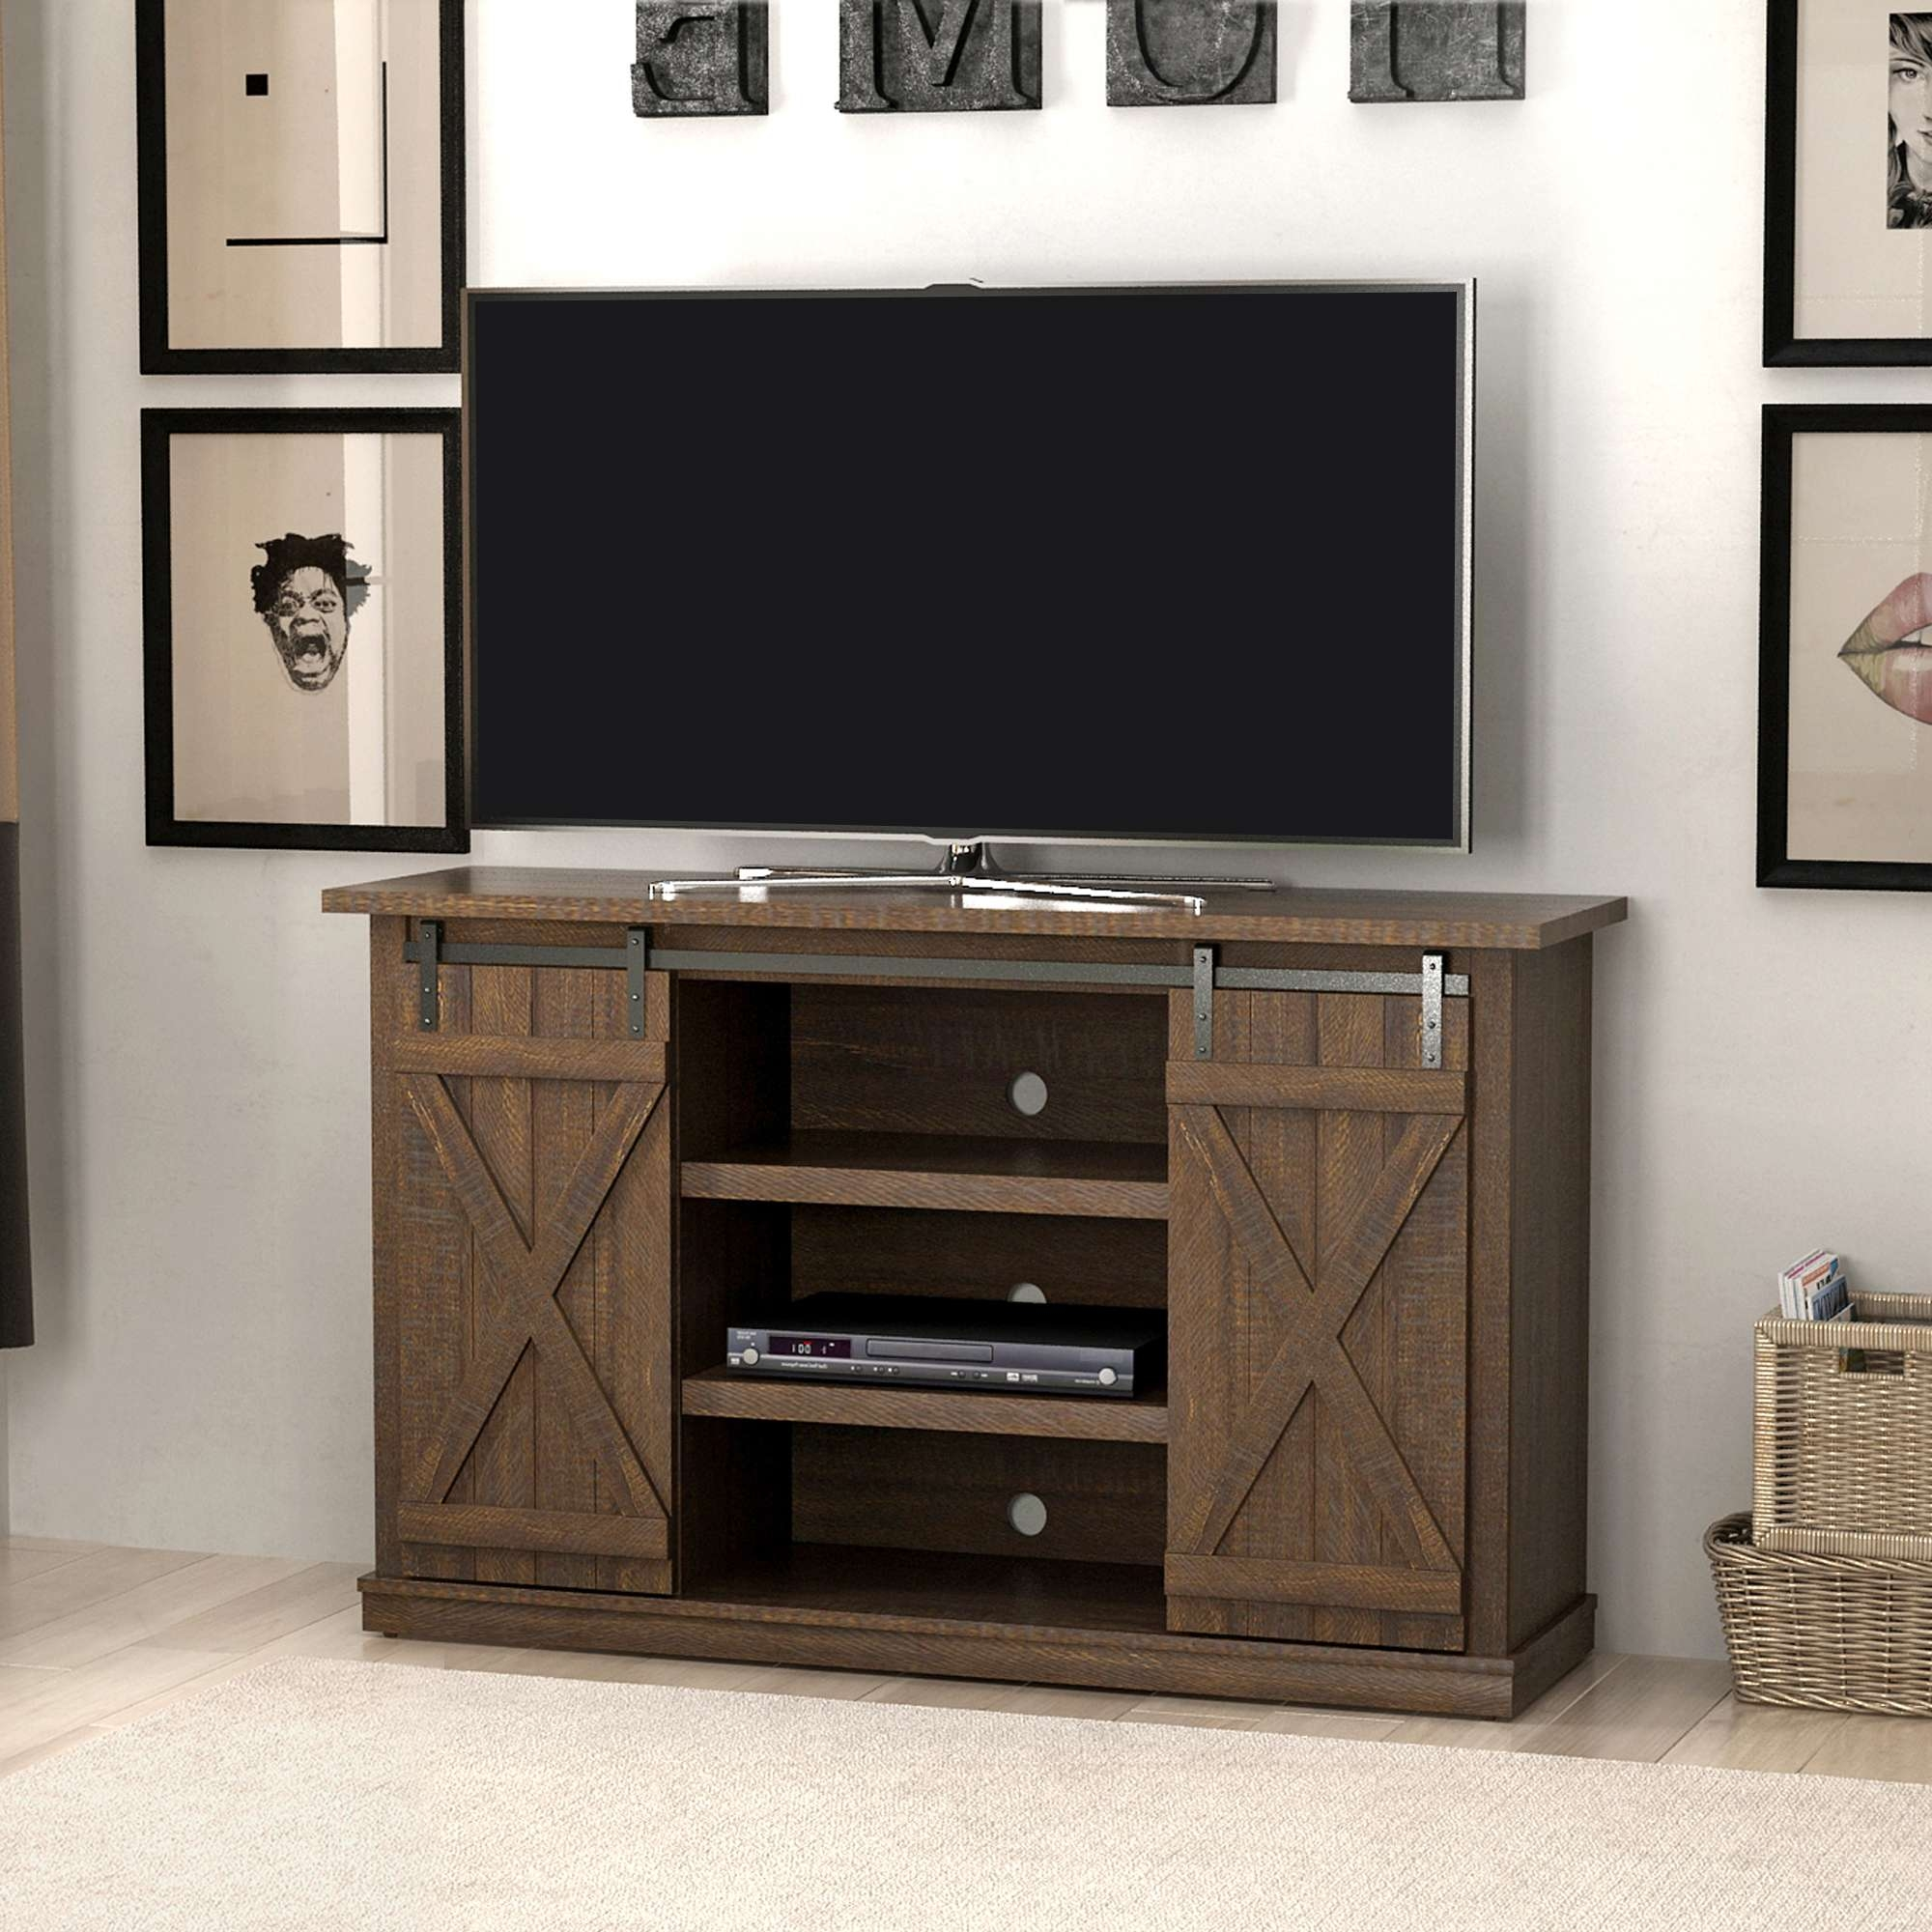 Tv Stands – Walmart Throughout Wooden Tv Stands For 50 Inch Tv (View 10 of 15)